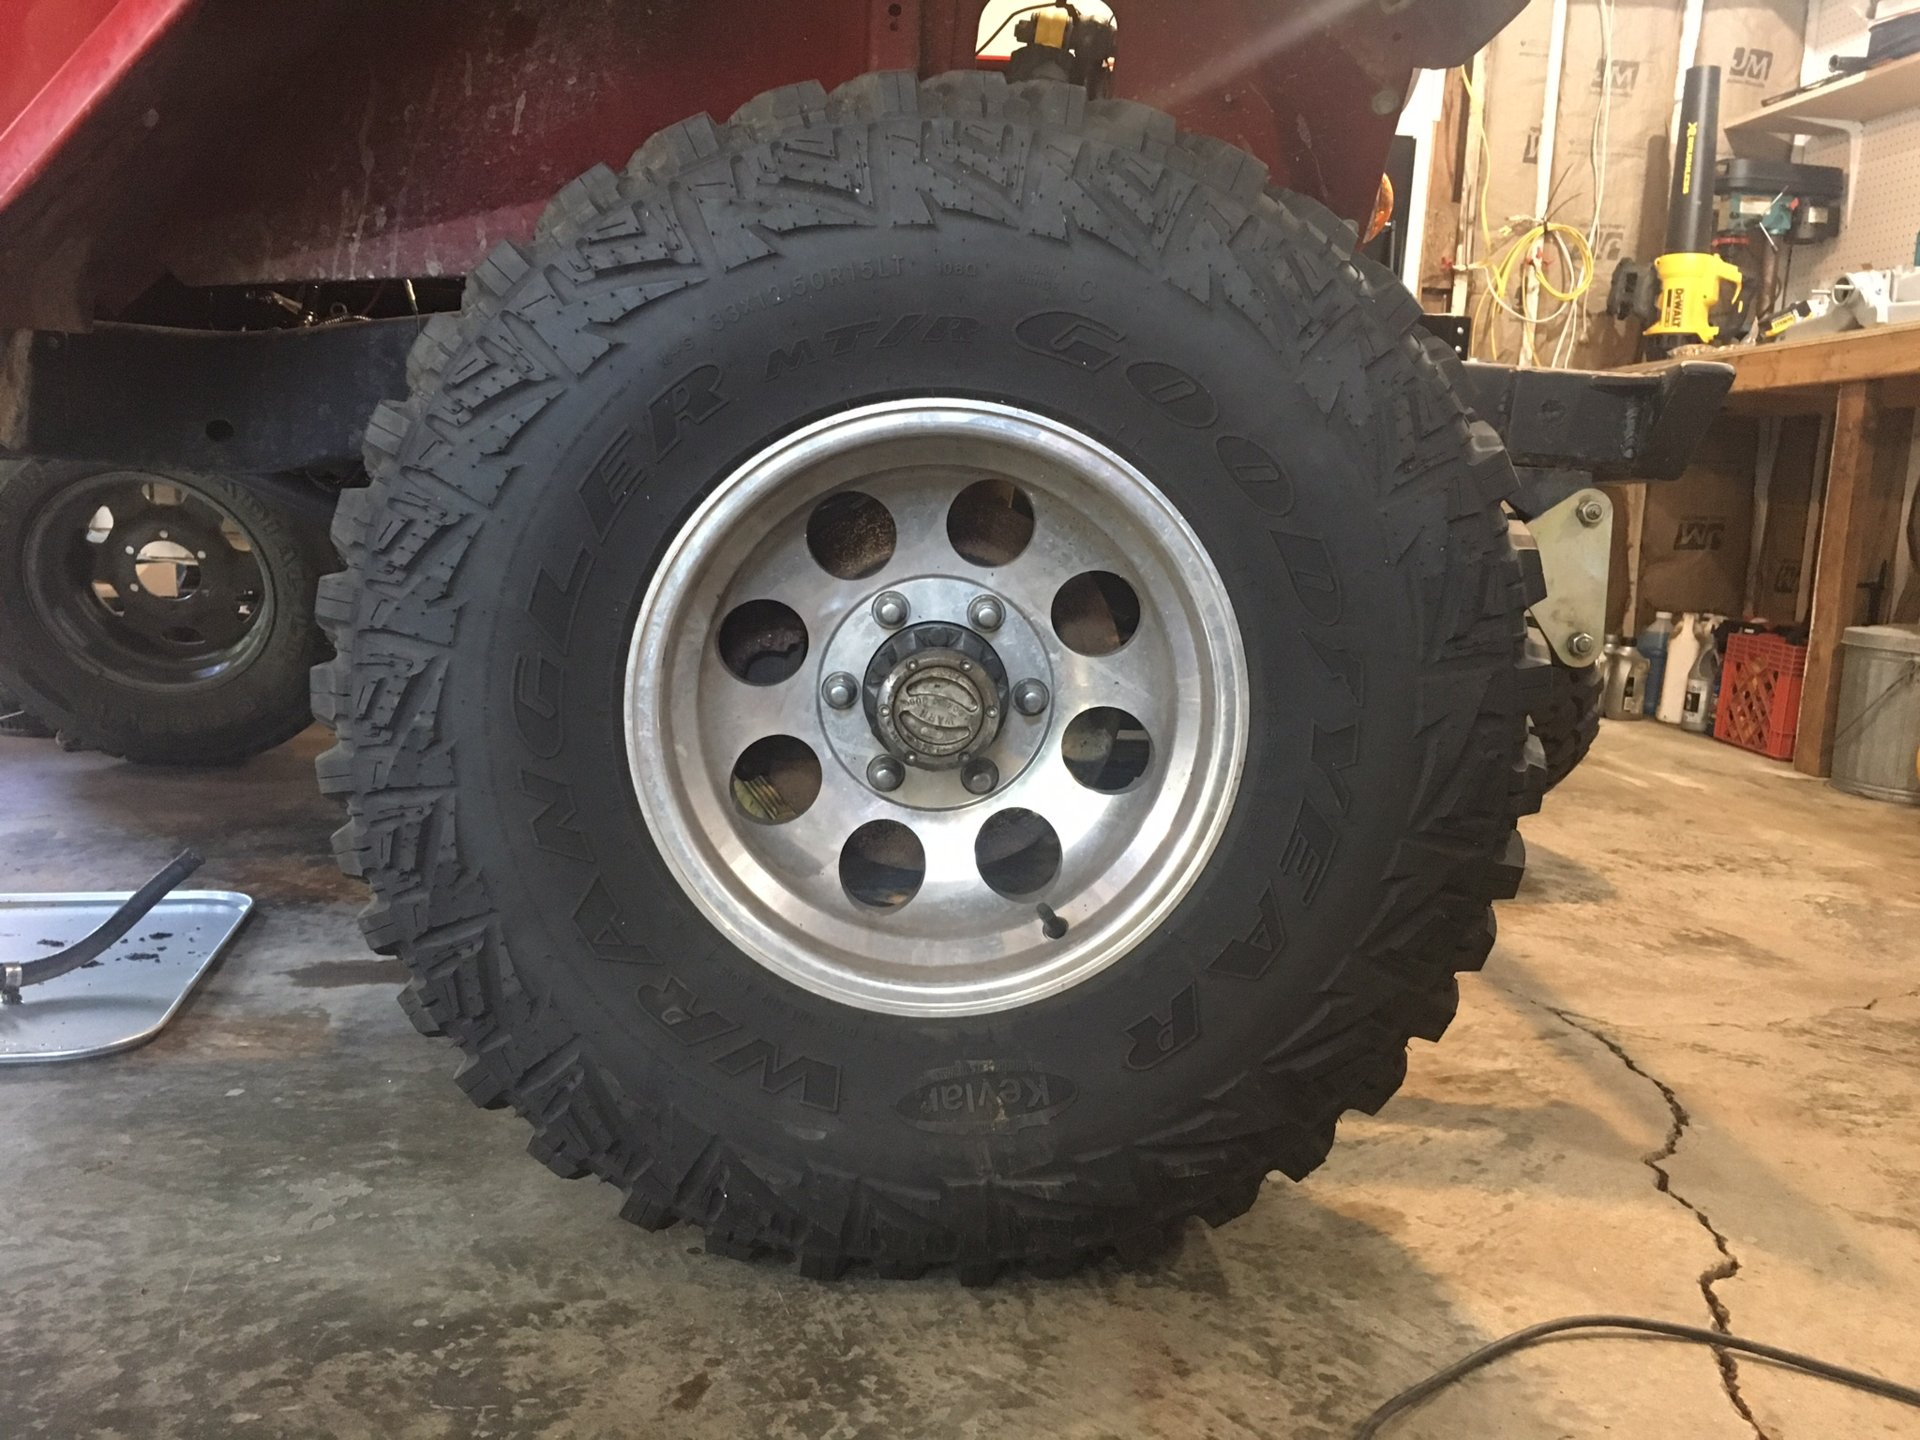 For Sale 33x12 5r15 Goodyear MT R tires and wheels Like New